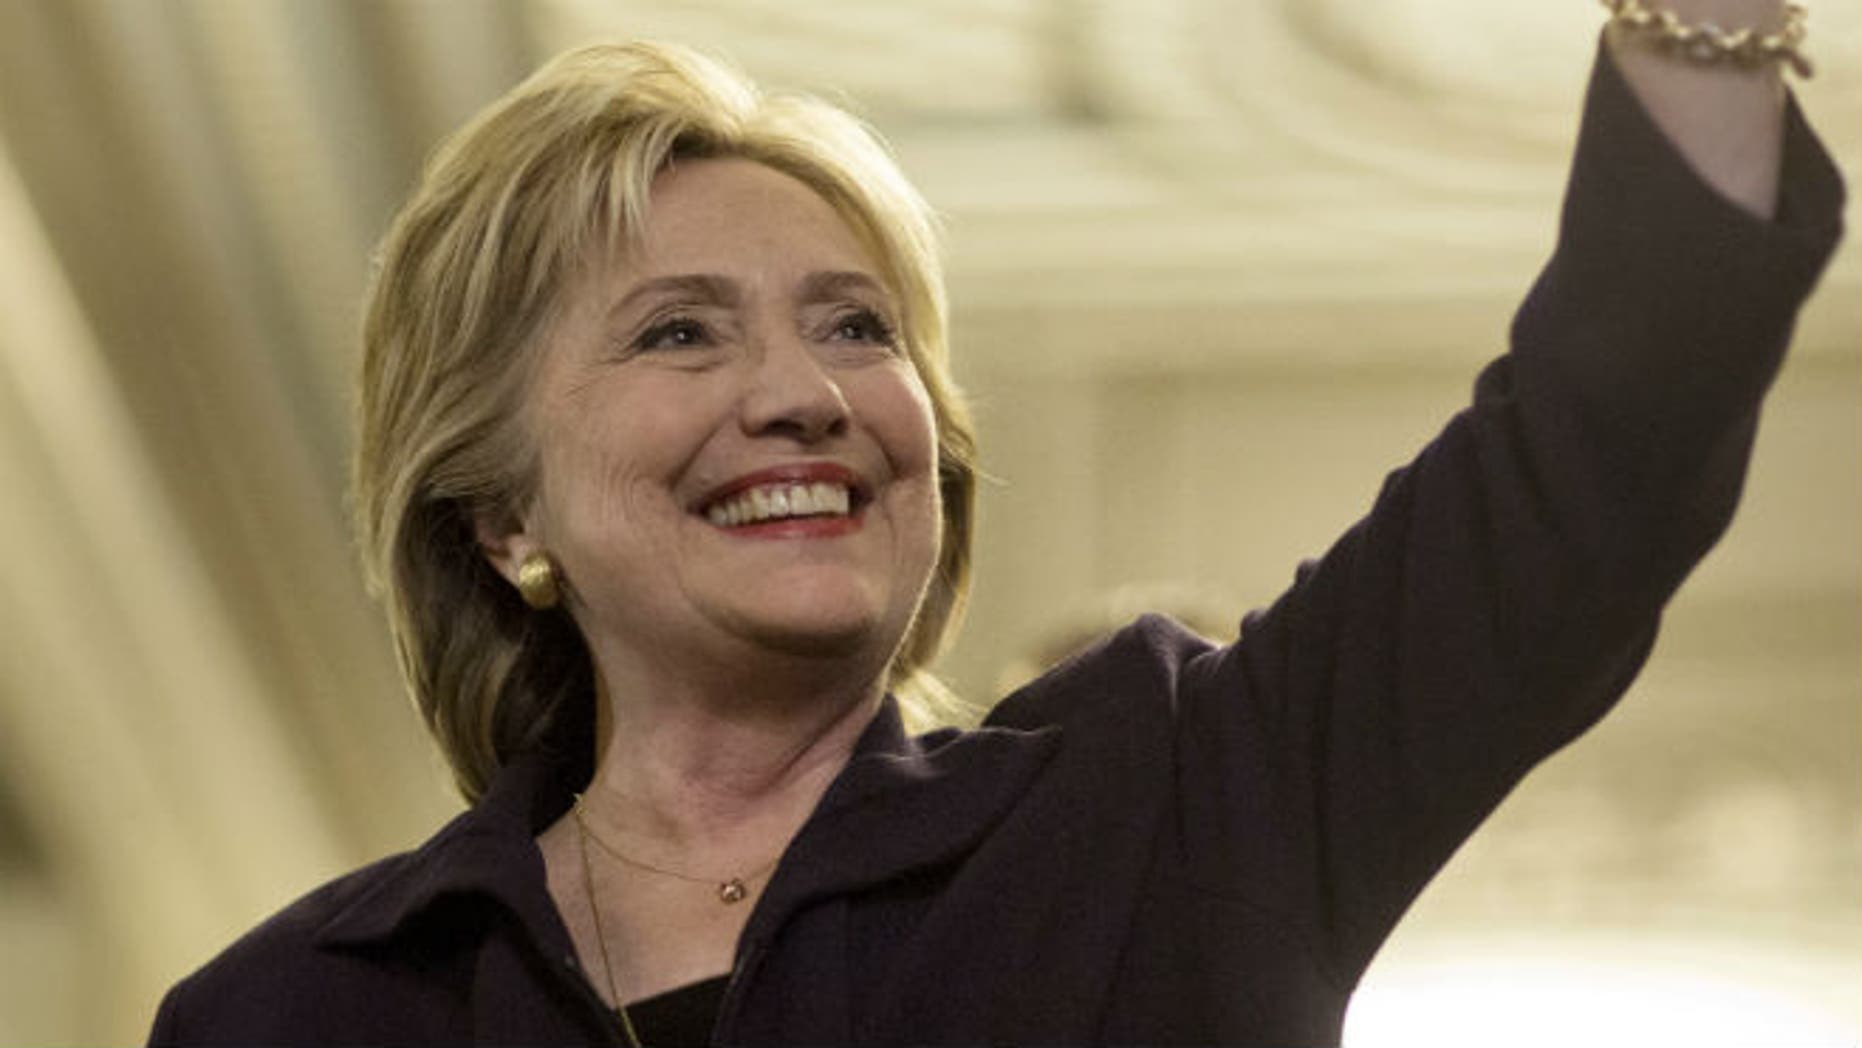 U.S. Democratic presidential candidate Hillary Clinton waves after testifying to the House Select Committee on Benghazi on Capitol Hill in Washington October 22, 2015. REUTERS/Joshua Roberts